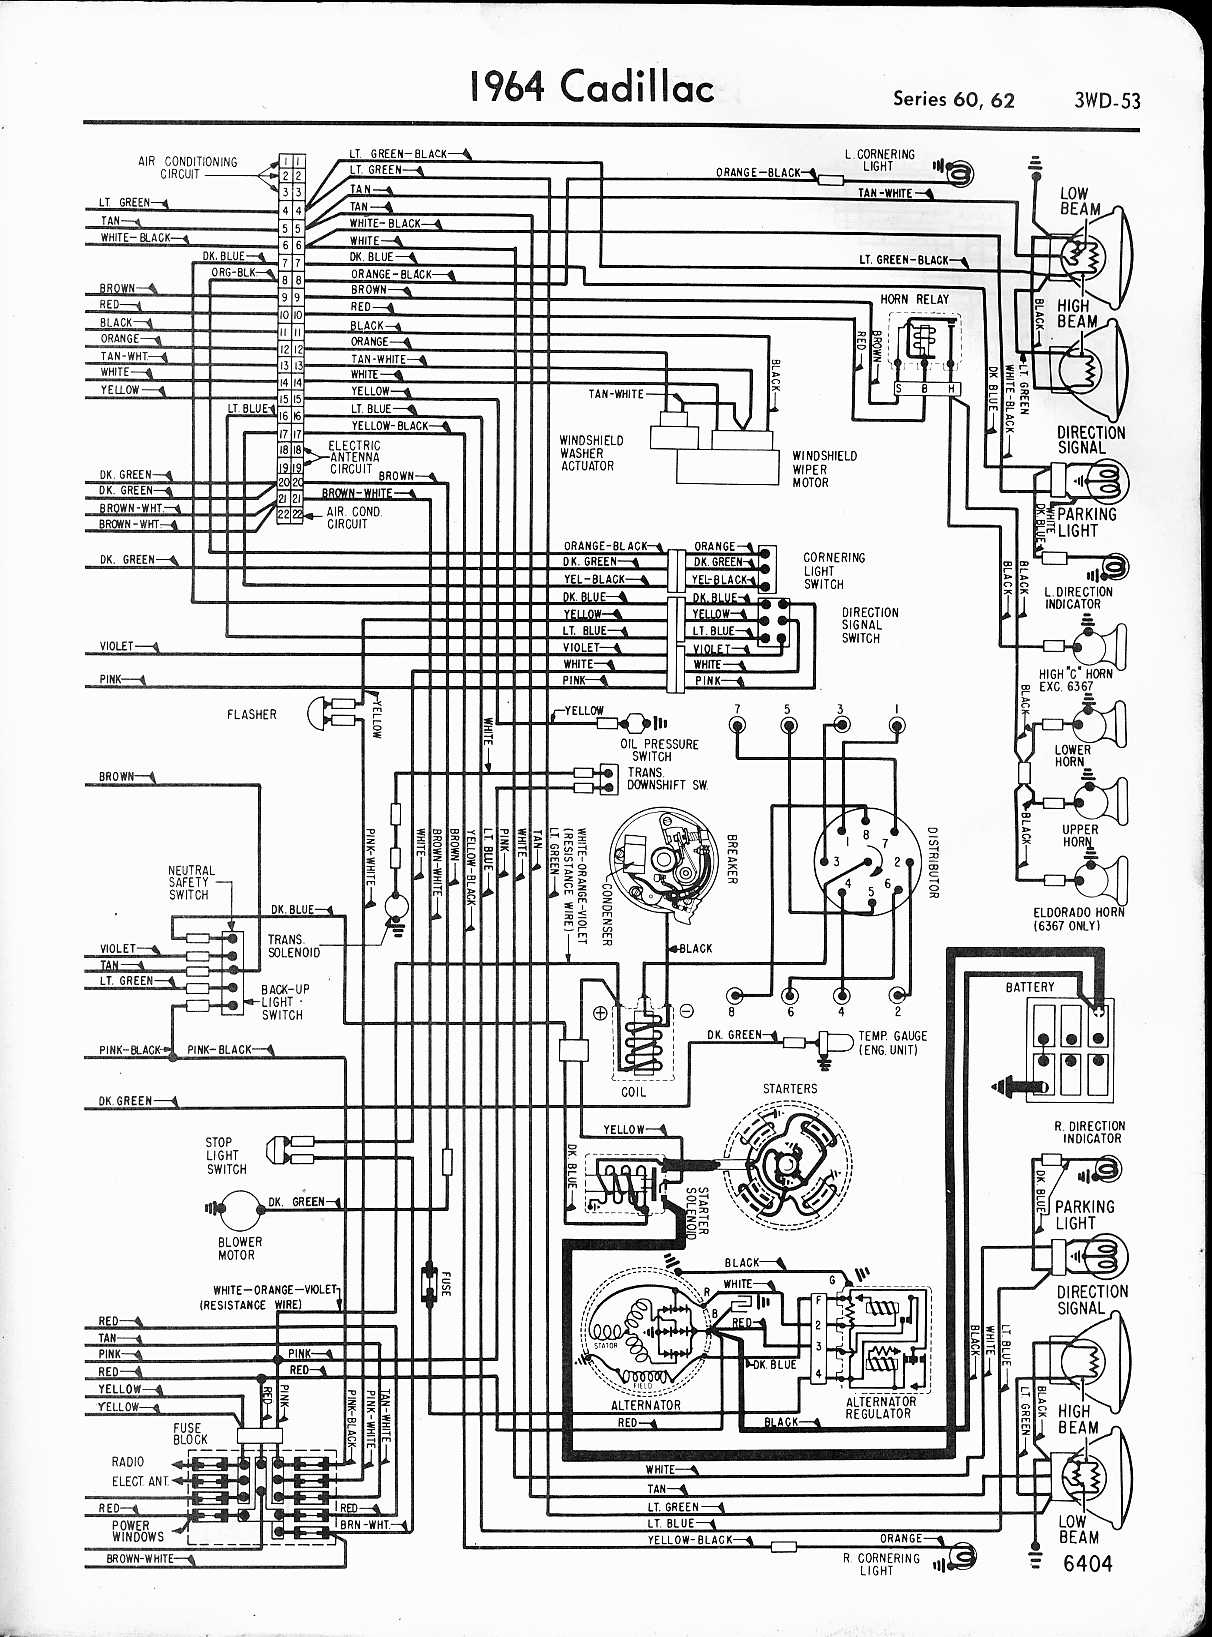 cadillac wiring diagrams 1957 1965 wiring diagram for a 1965 cadillac wiring diagram cadillac 1955 #3